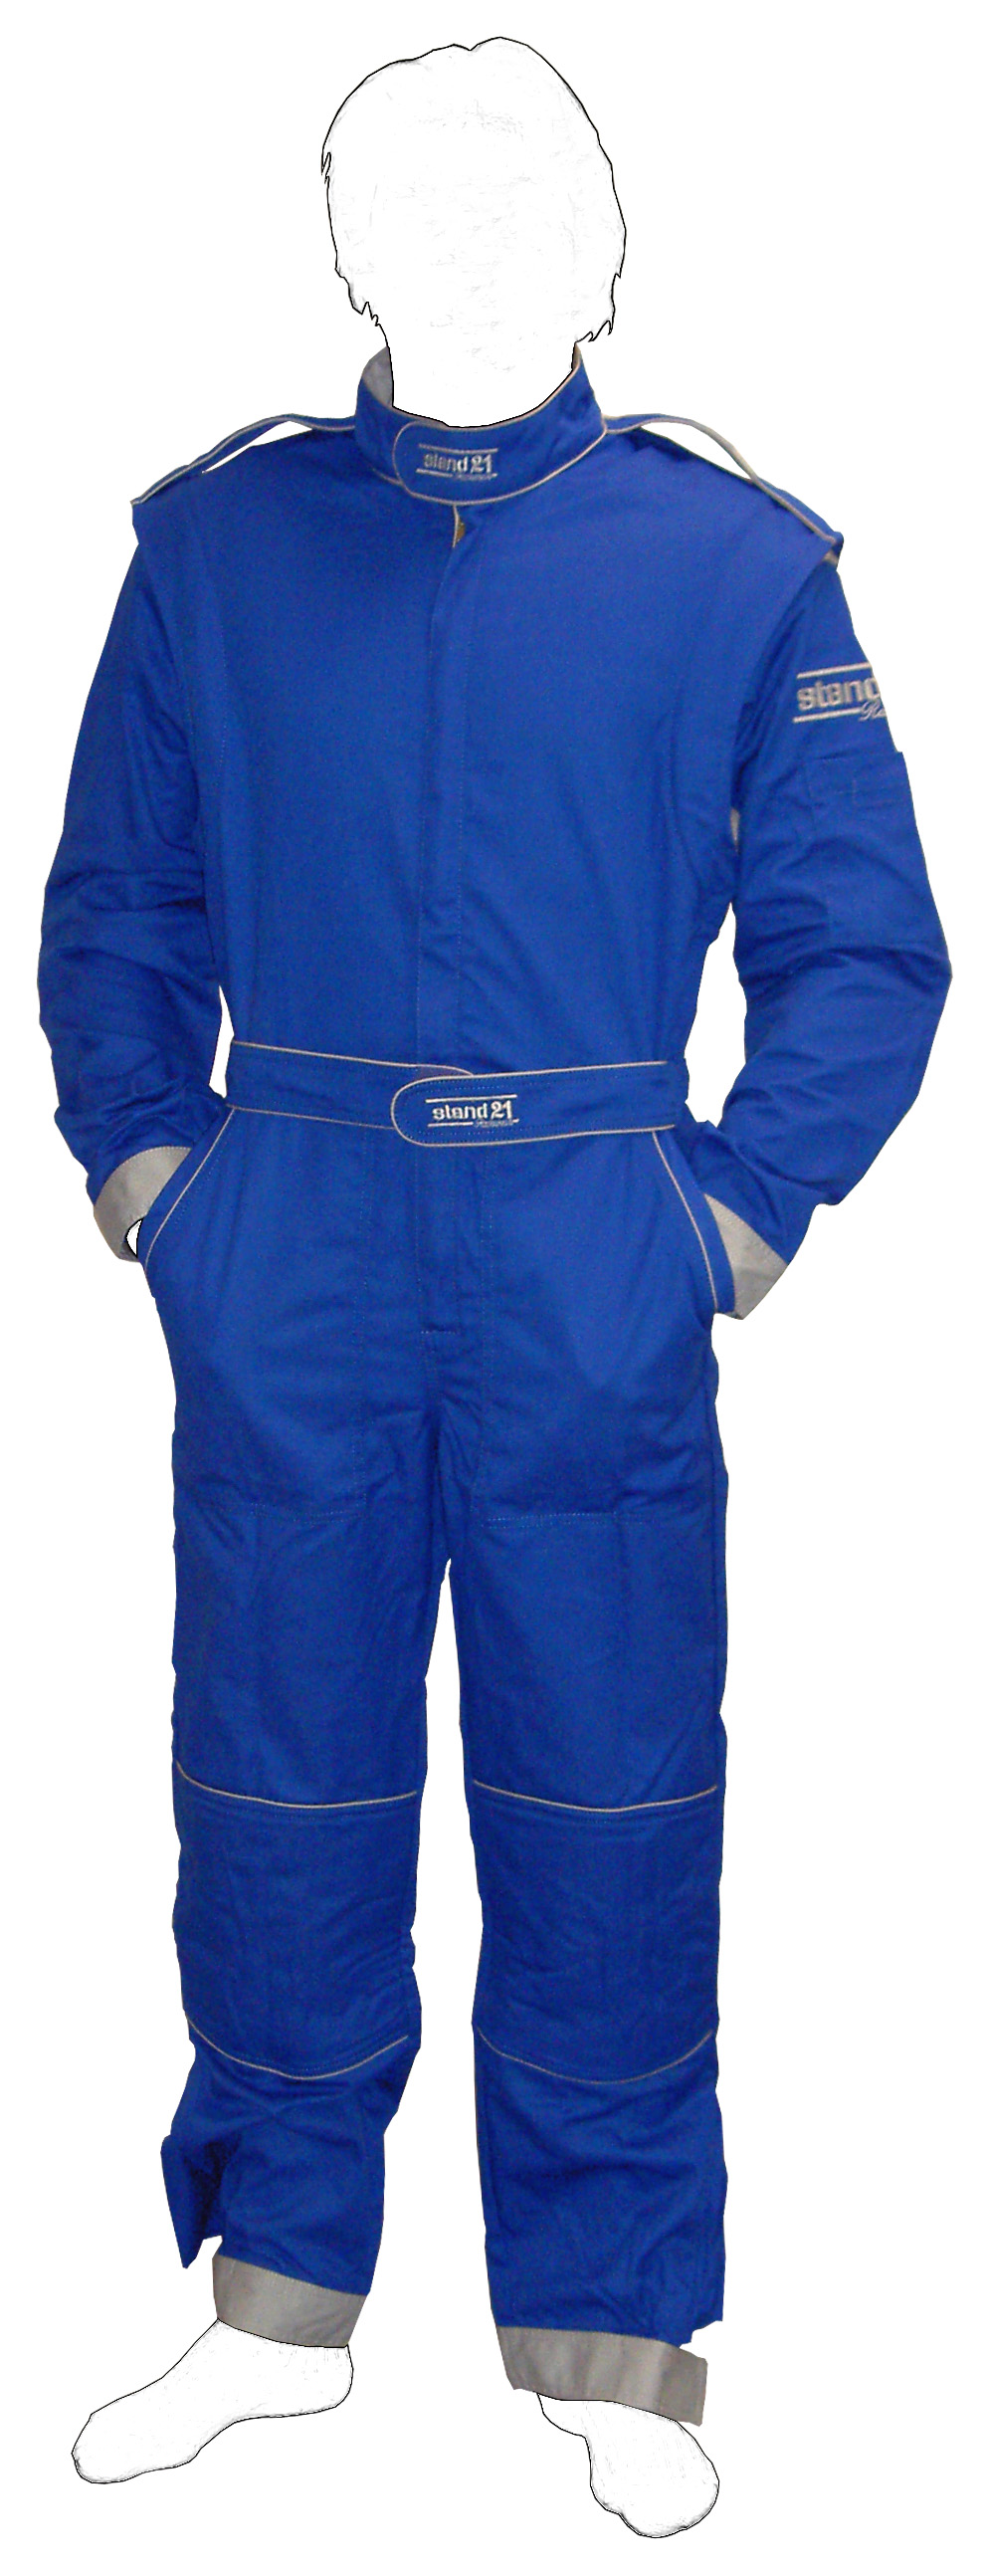 Stock royal blue with grey piping K09 go-kart suit